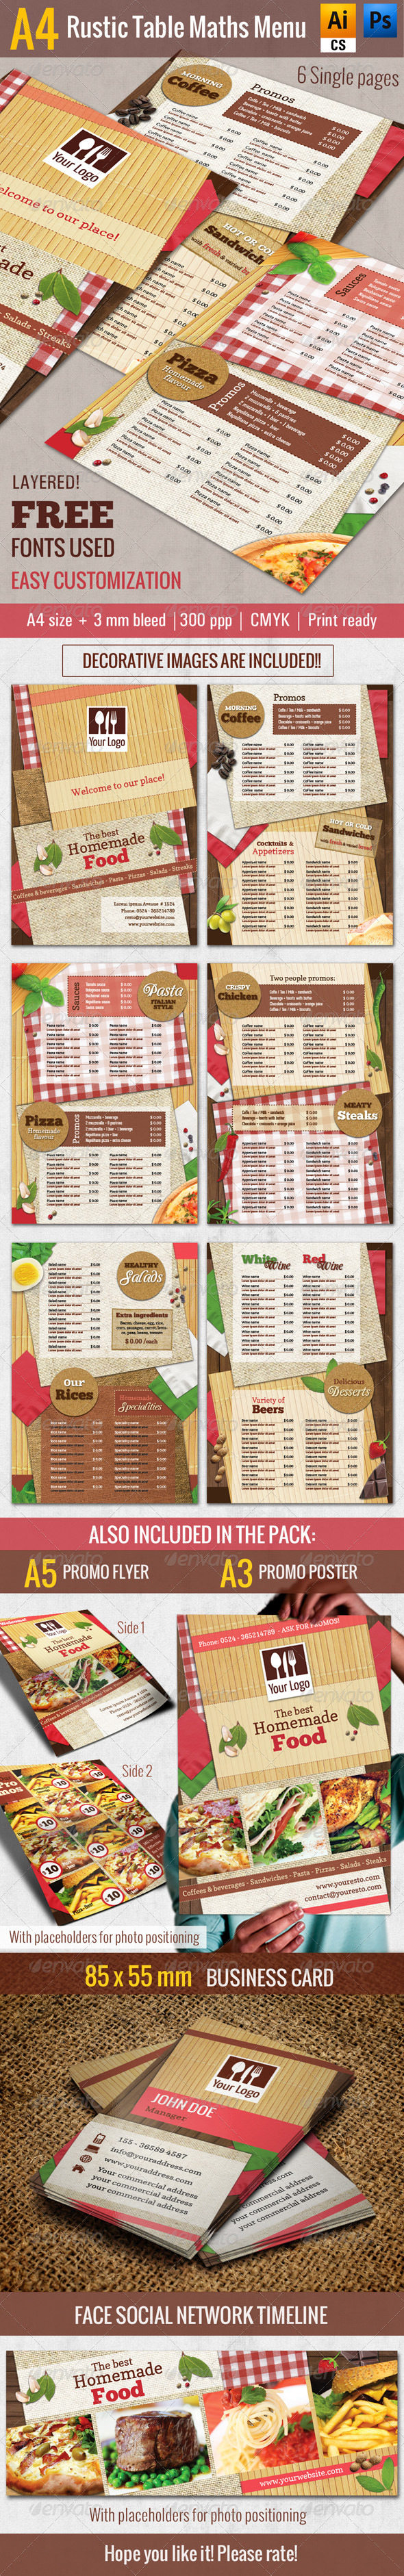 GraphicRiver A4 Rustic Table Mats Menu Restaurant Pack 7681853